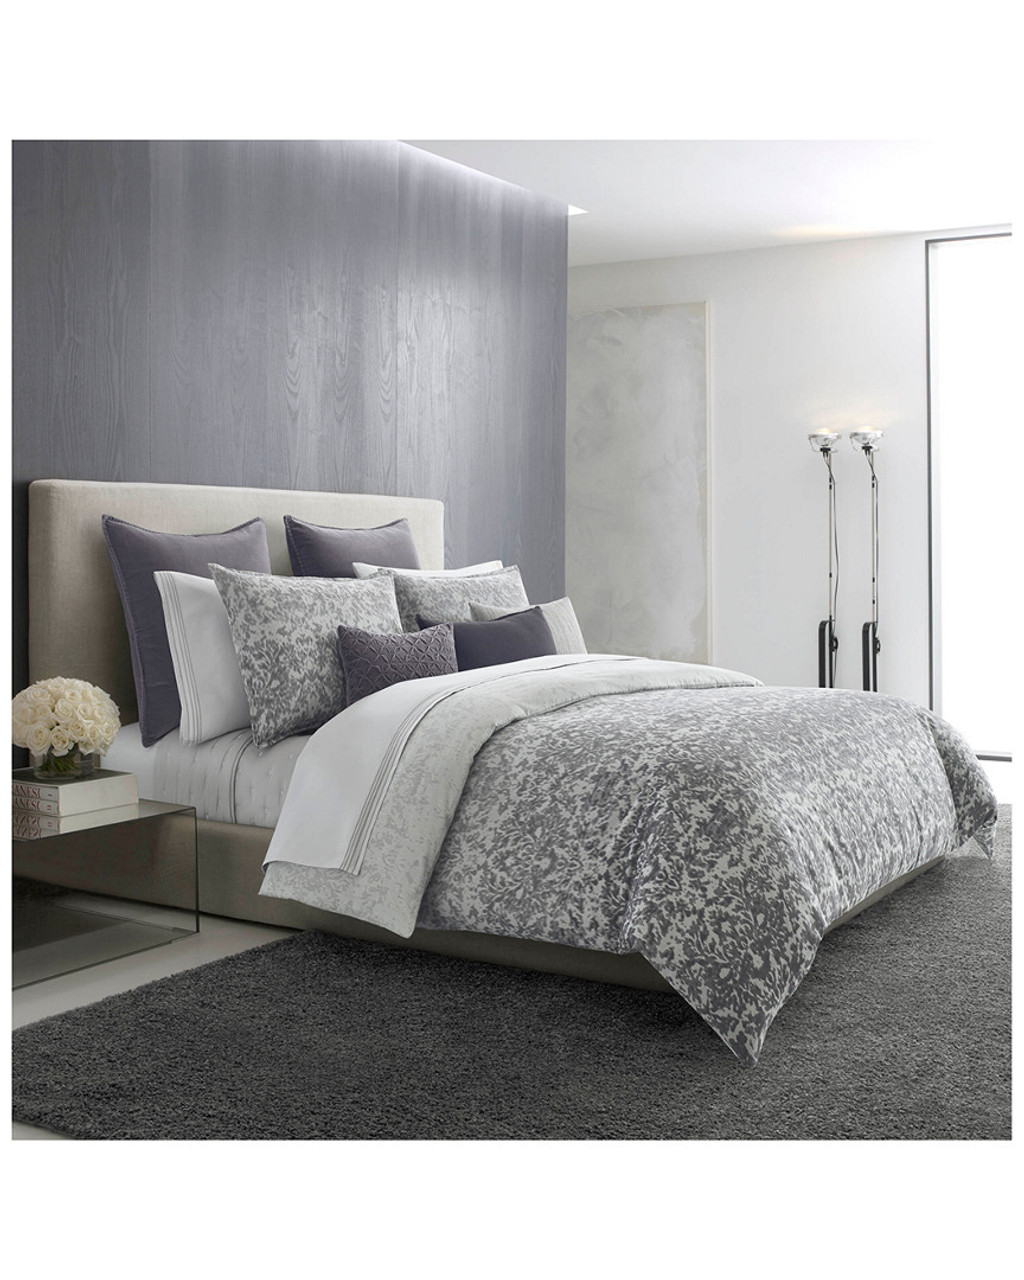 Damask Duvet Vera Wang Degrade Damask Jacquard Gray Duvet Collection 3030714511